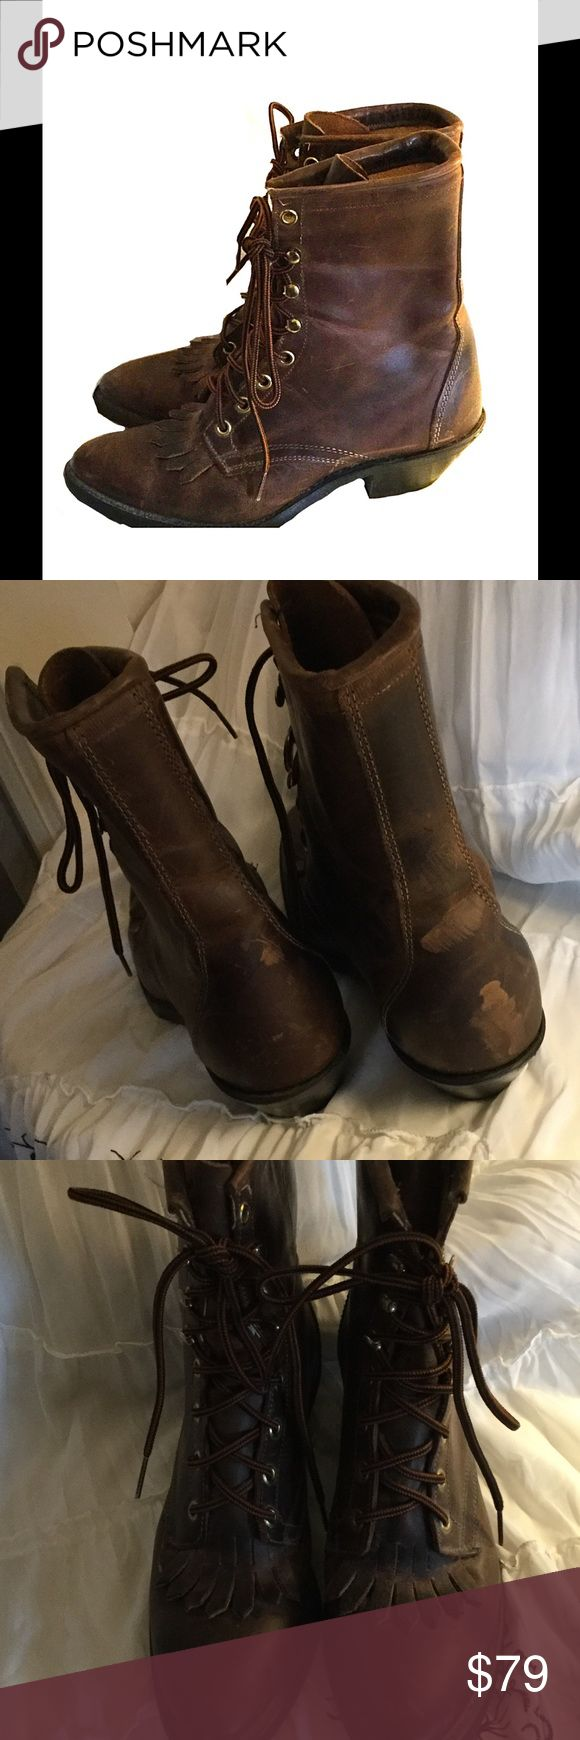 """Ladies Western Boots by Laredo Ladies western boots by Laredo. Needs some TLC. 1.5"""" heel. Boots are 7"""" tall. Have been worn only a couple times. They look distressed from being in storage for several years. Very cute! Laredo Shoes Lace Up Boots"""